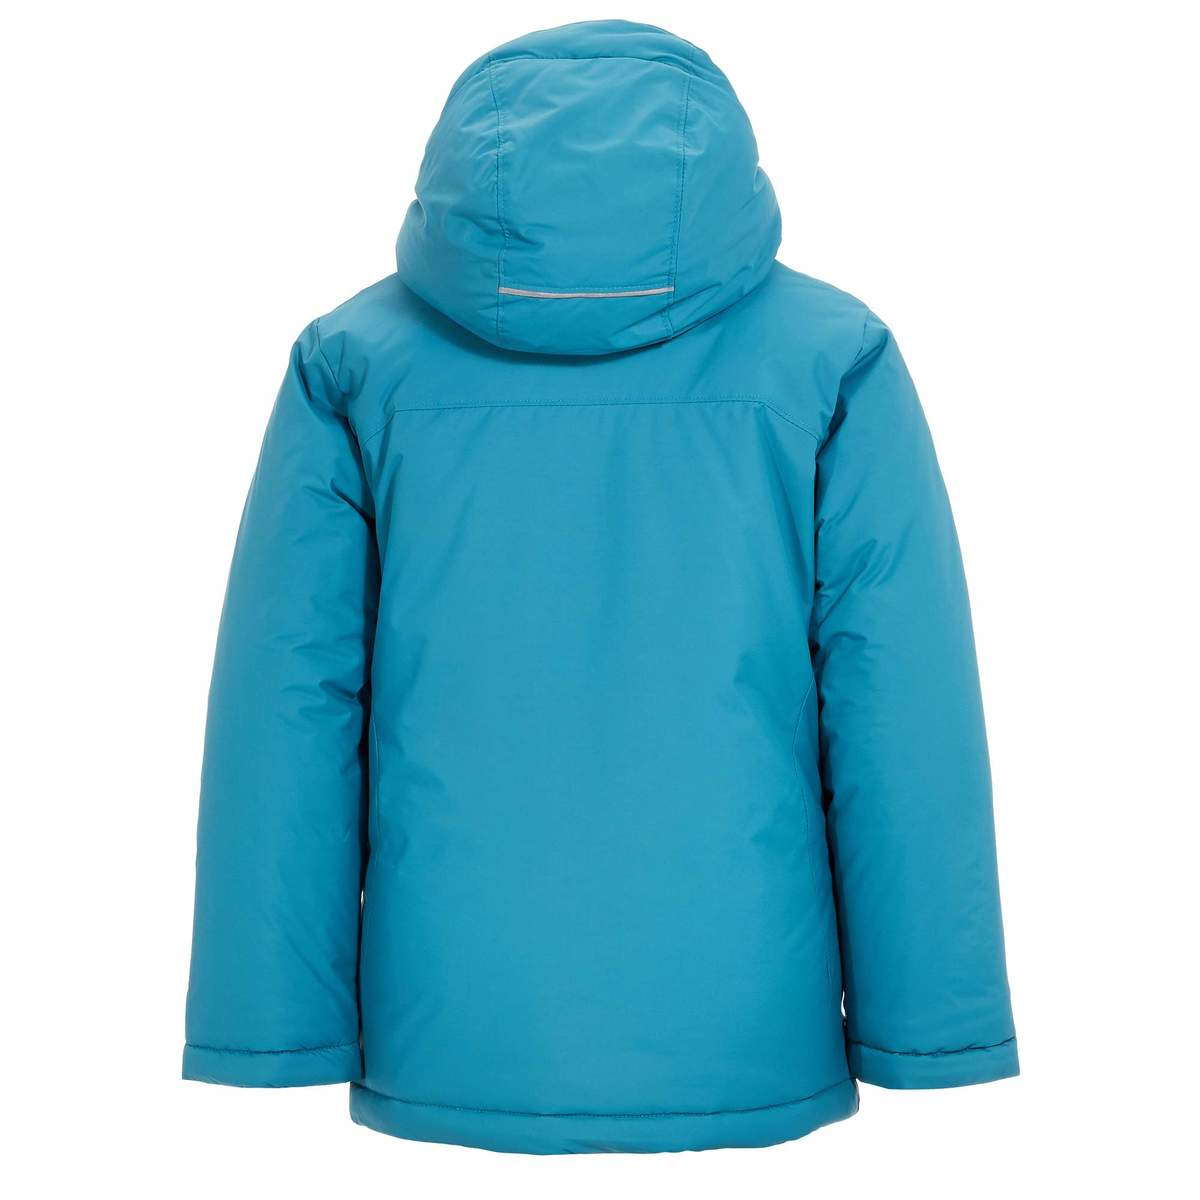 Bild 3 von Columbia Alpine Free Fall Jacket Kinder - Winterjacke